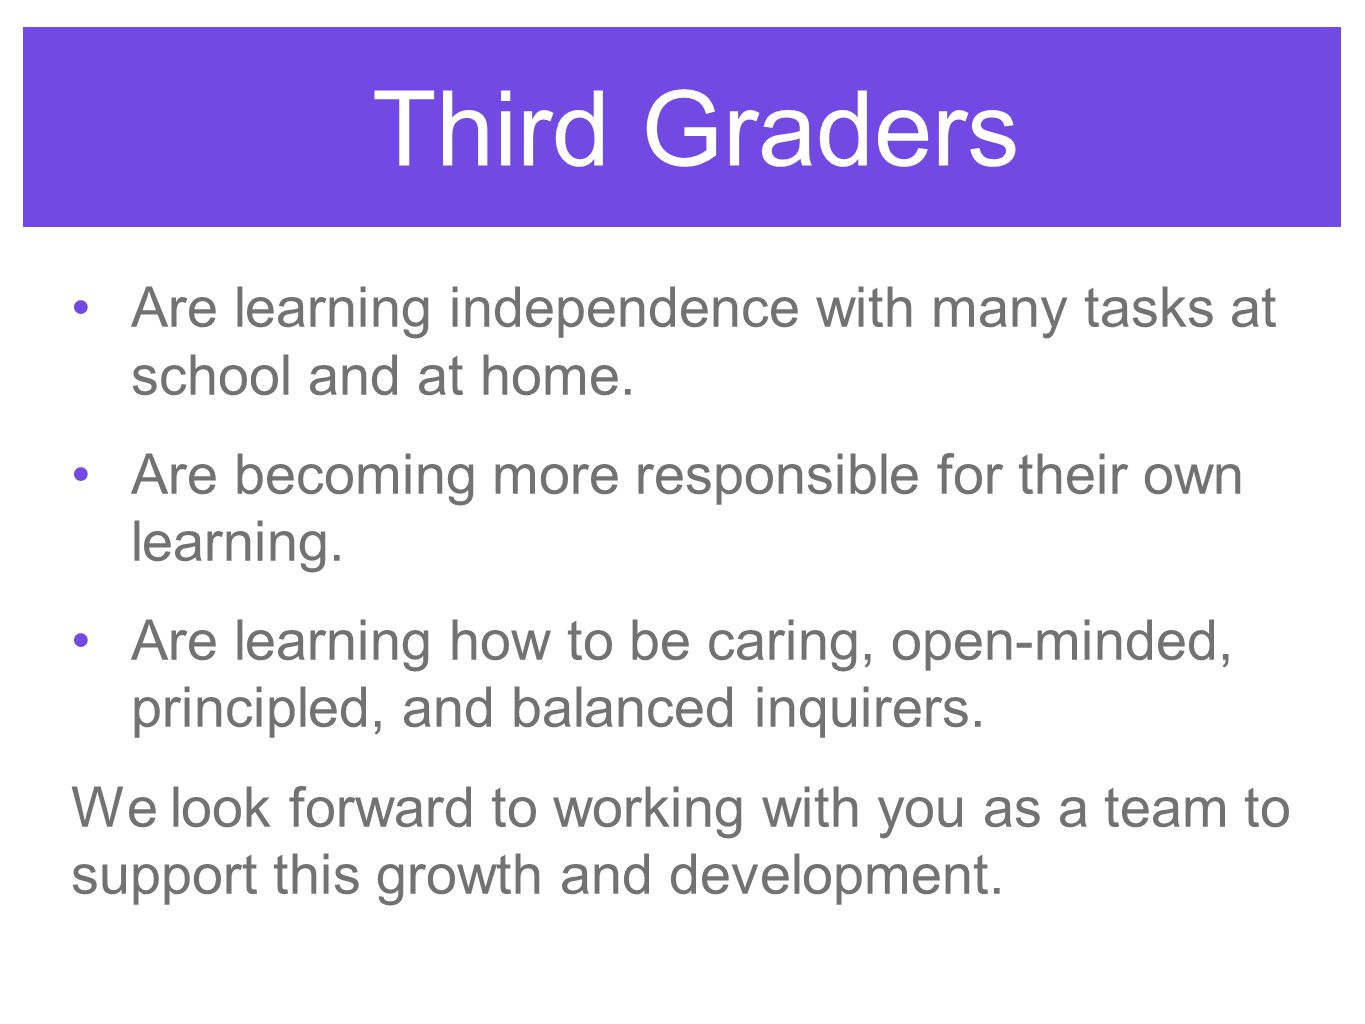 Third Graders Are learning independence with many tasks at school and at home.